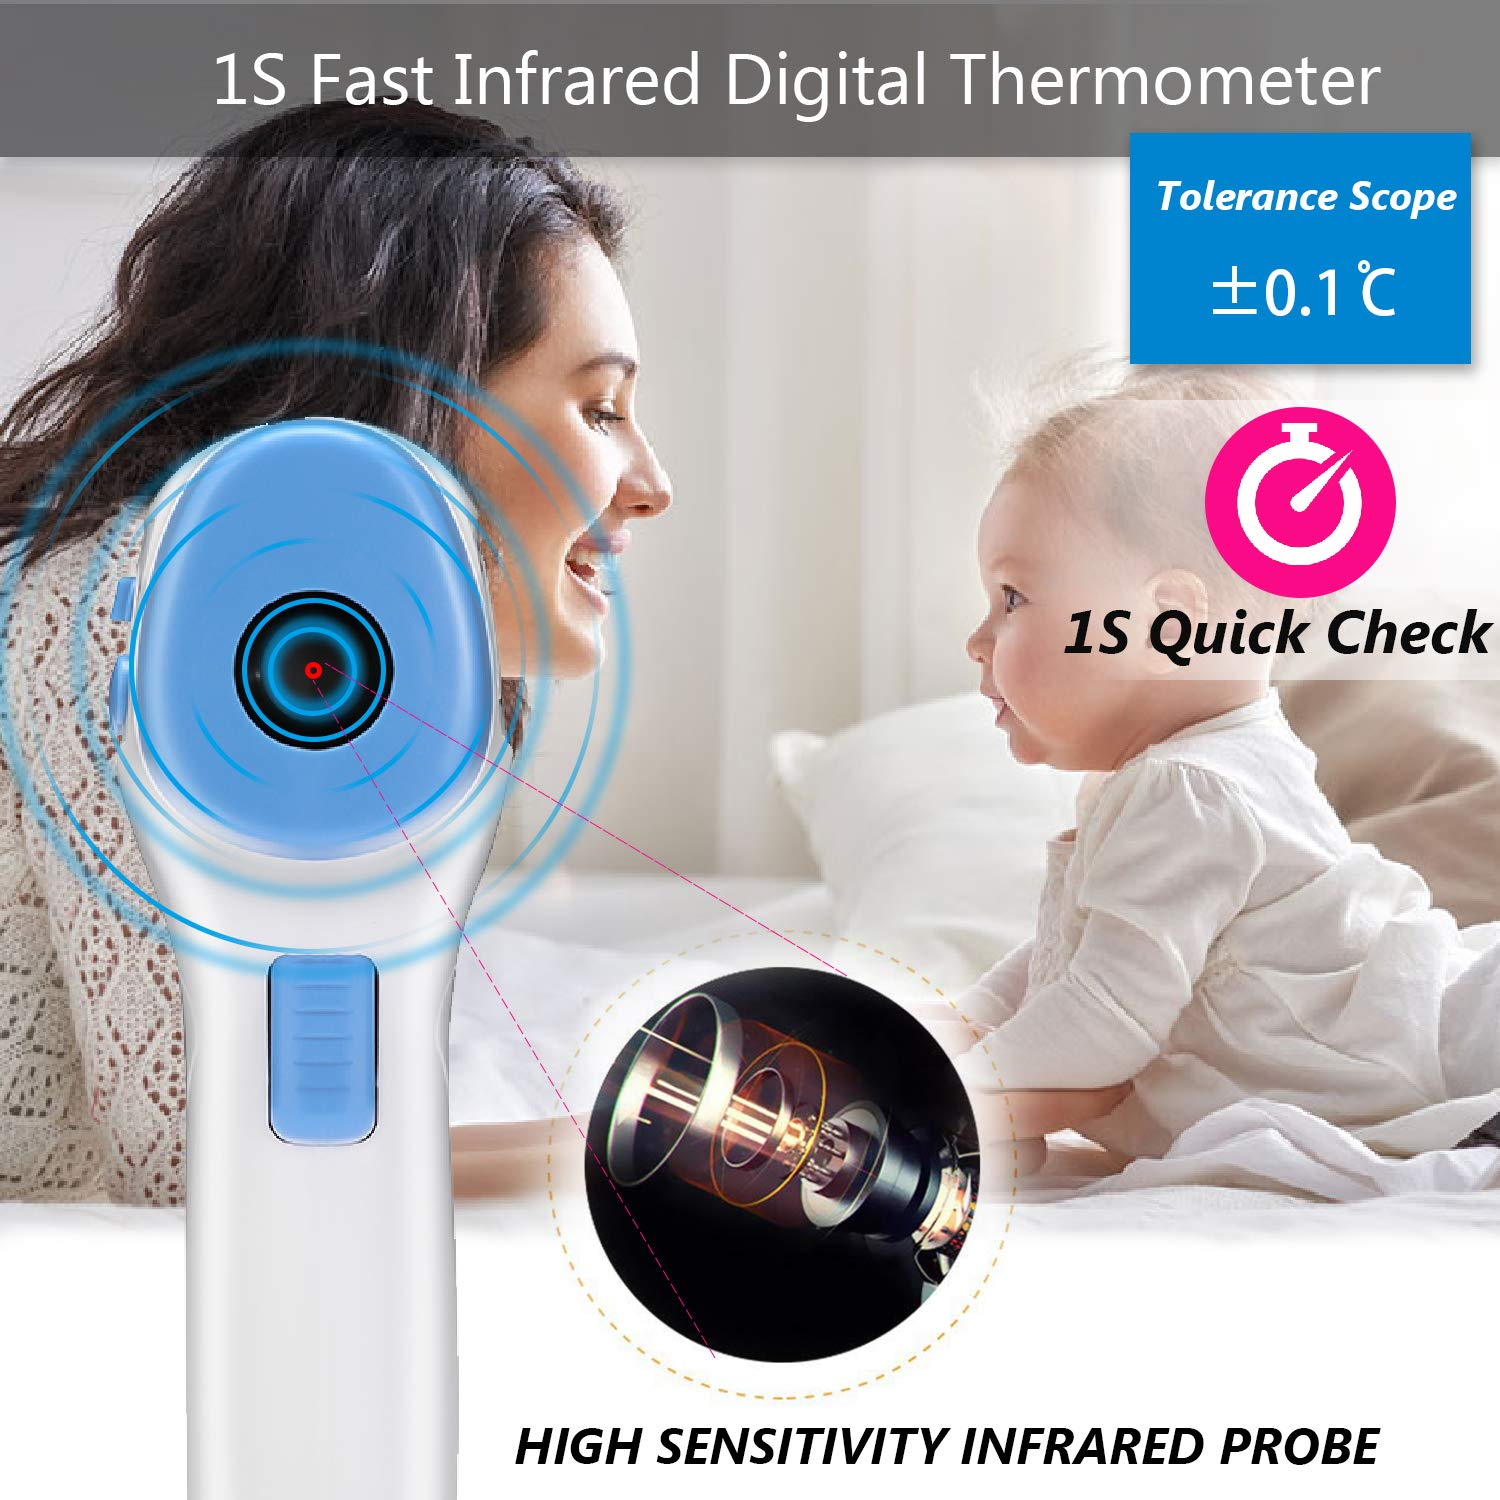 Backlight Baby Obj//Body Mode People Kids Forehead Thermometer for Adults Non-Contact Portable Professional Medical Digital Infrared Forehead Thermometer with ˚C // ˚F Adjustable Fever Alert